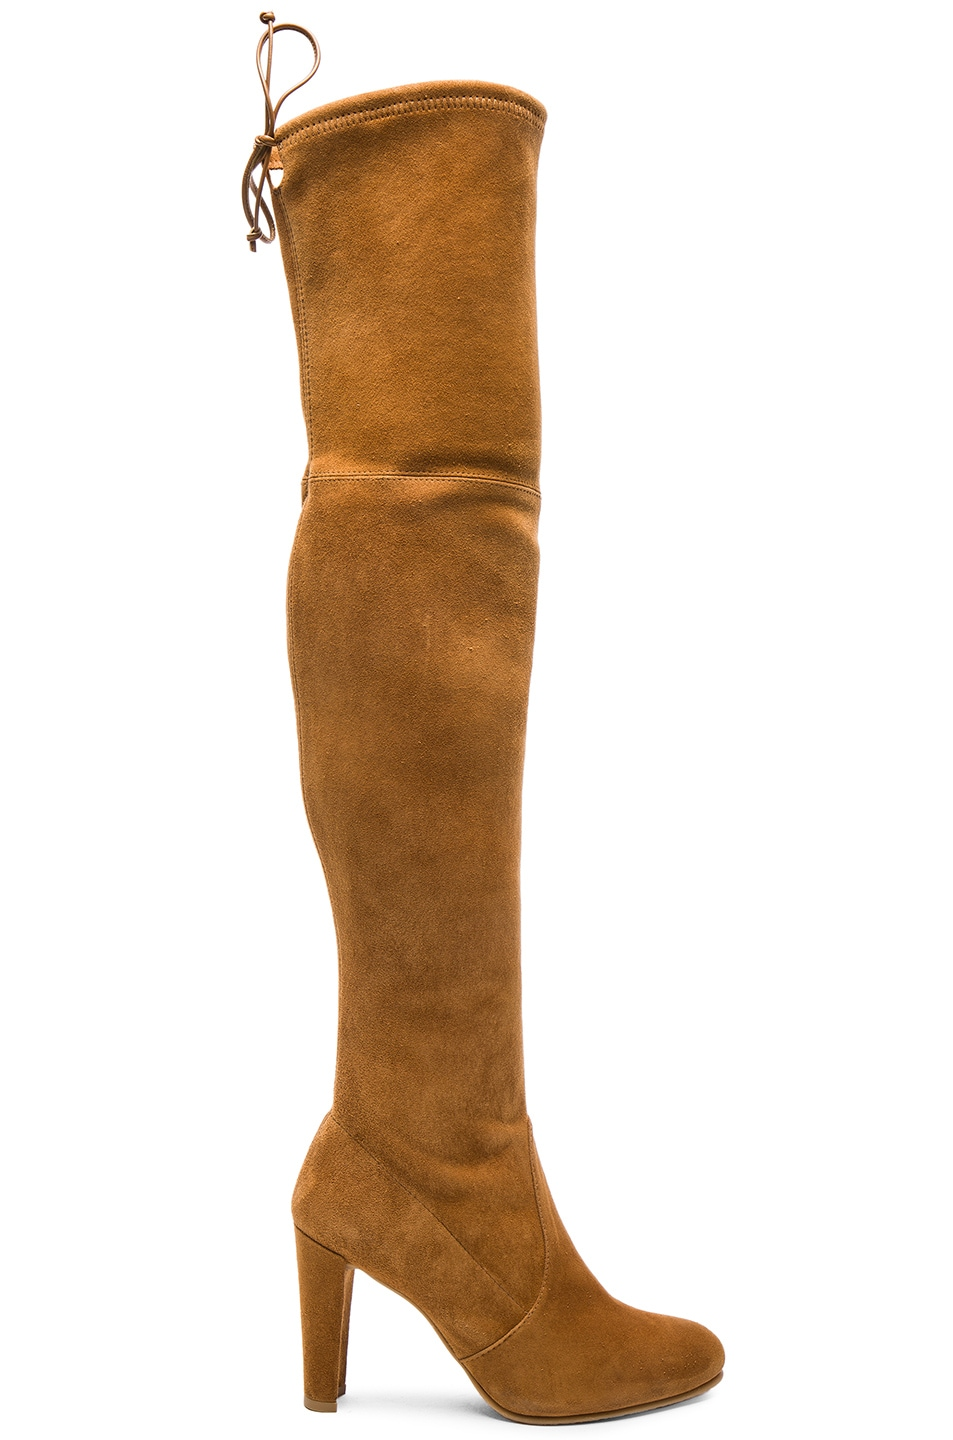 Image 1 of Stuart Weitzman Suede Highland Boots in Camel